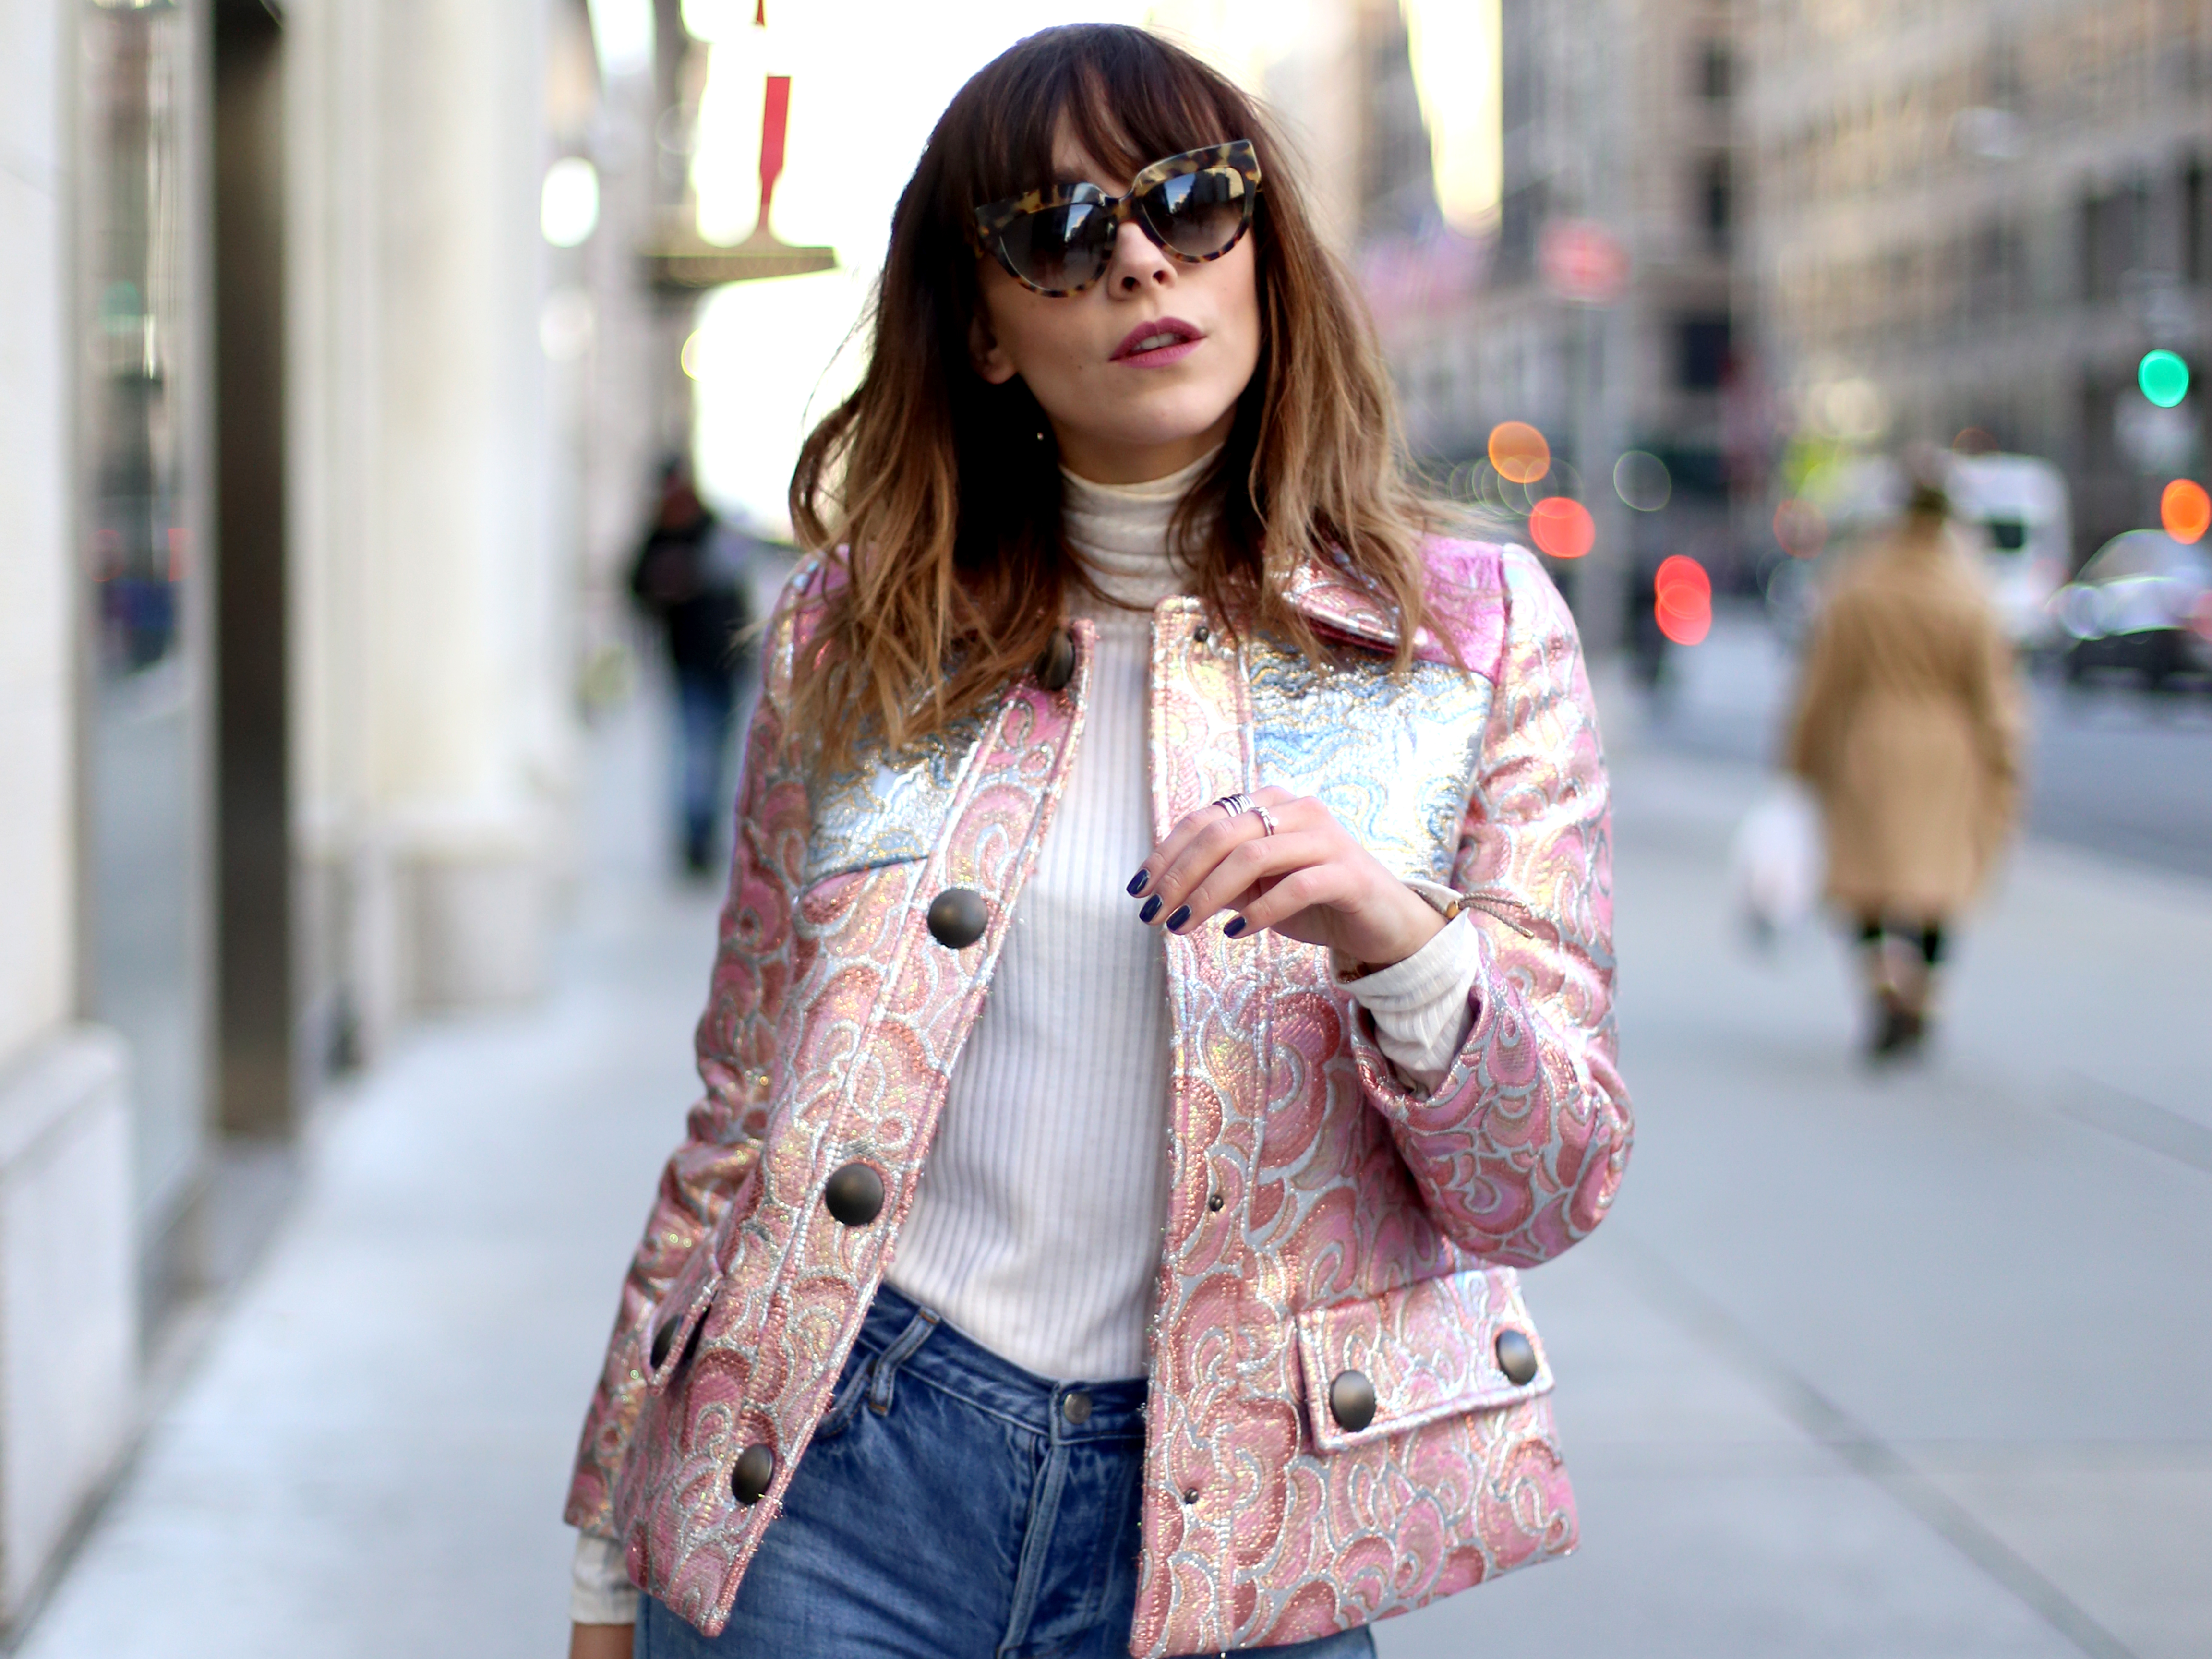 HOW TO WEAR A METALLIC PINK FOR DAYWEAR